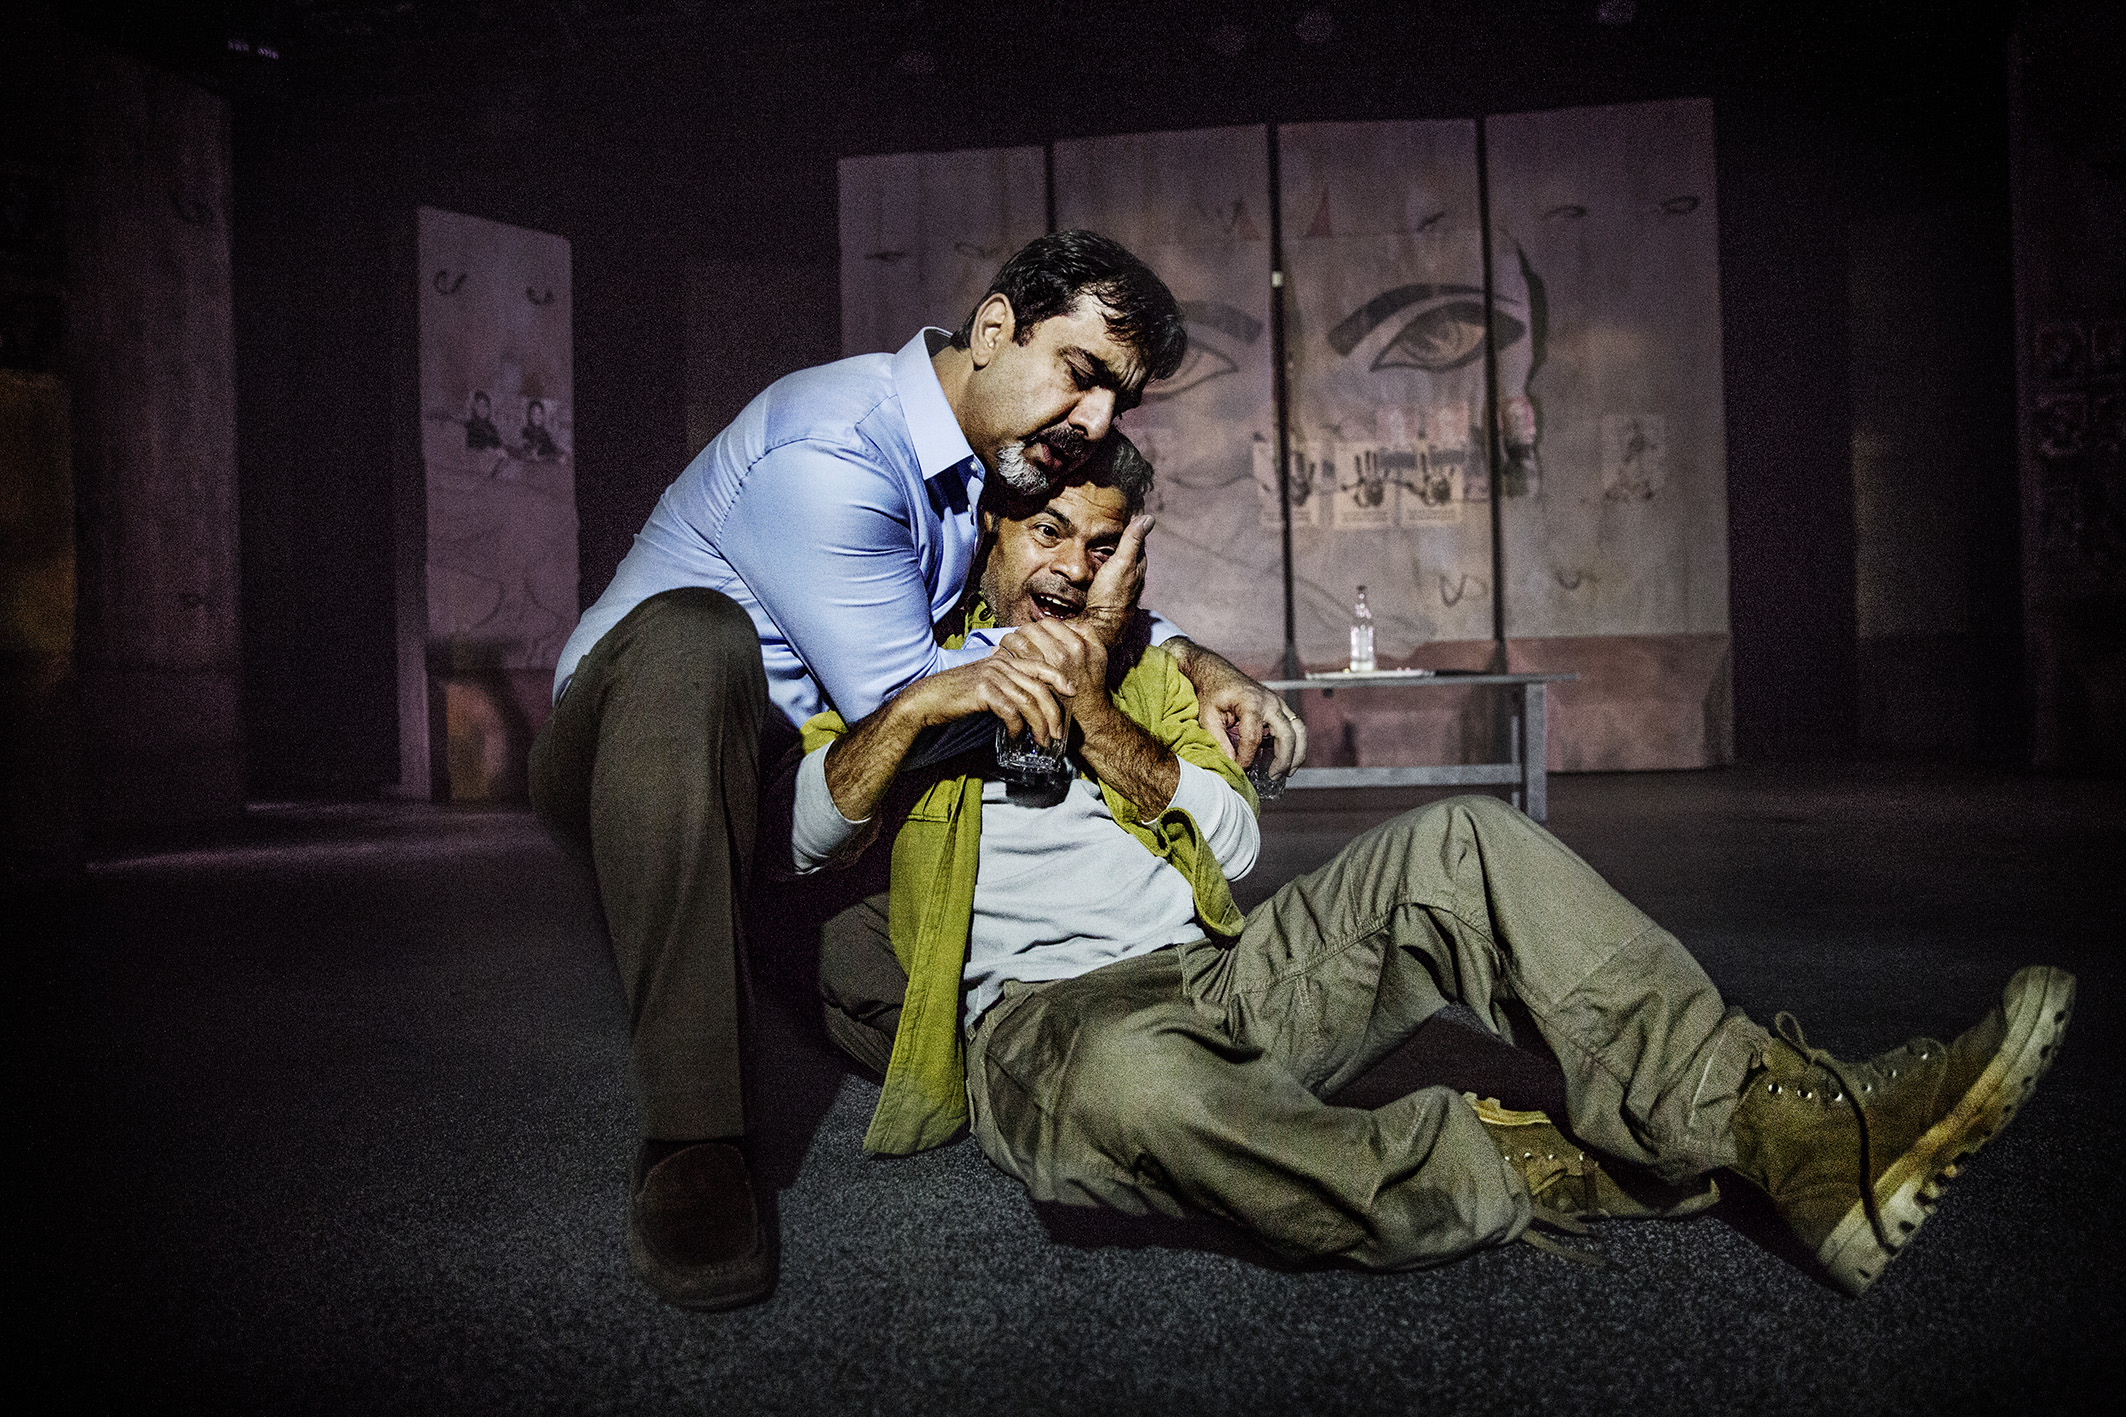 arab angst on swedish stages